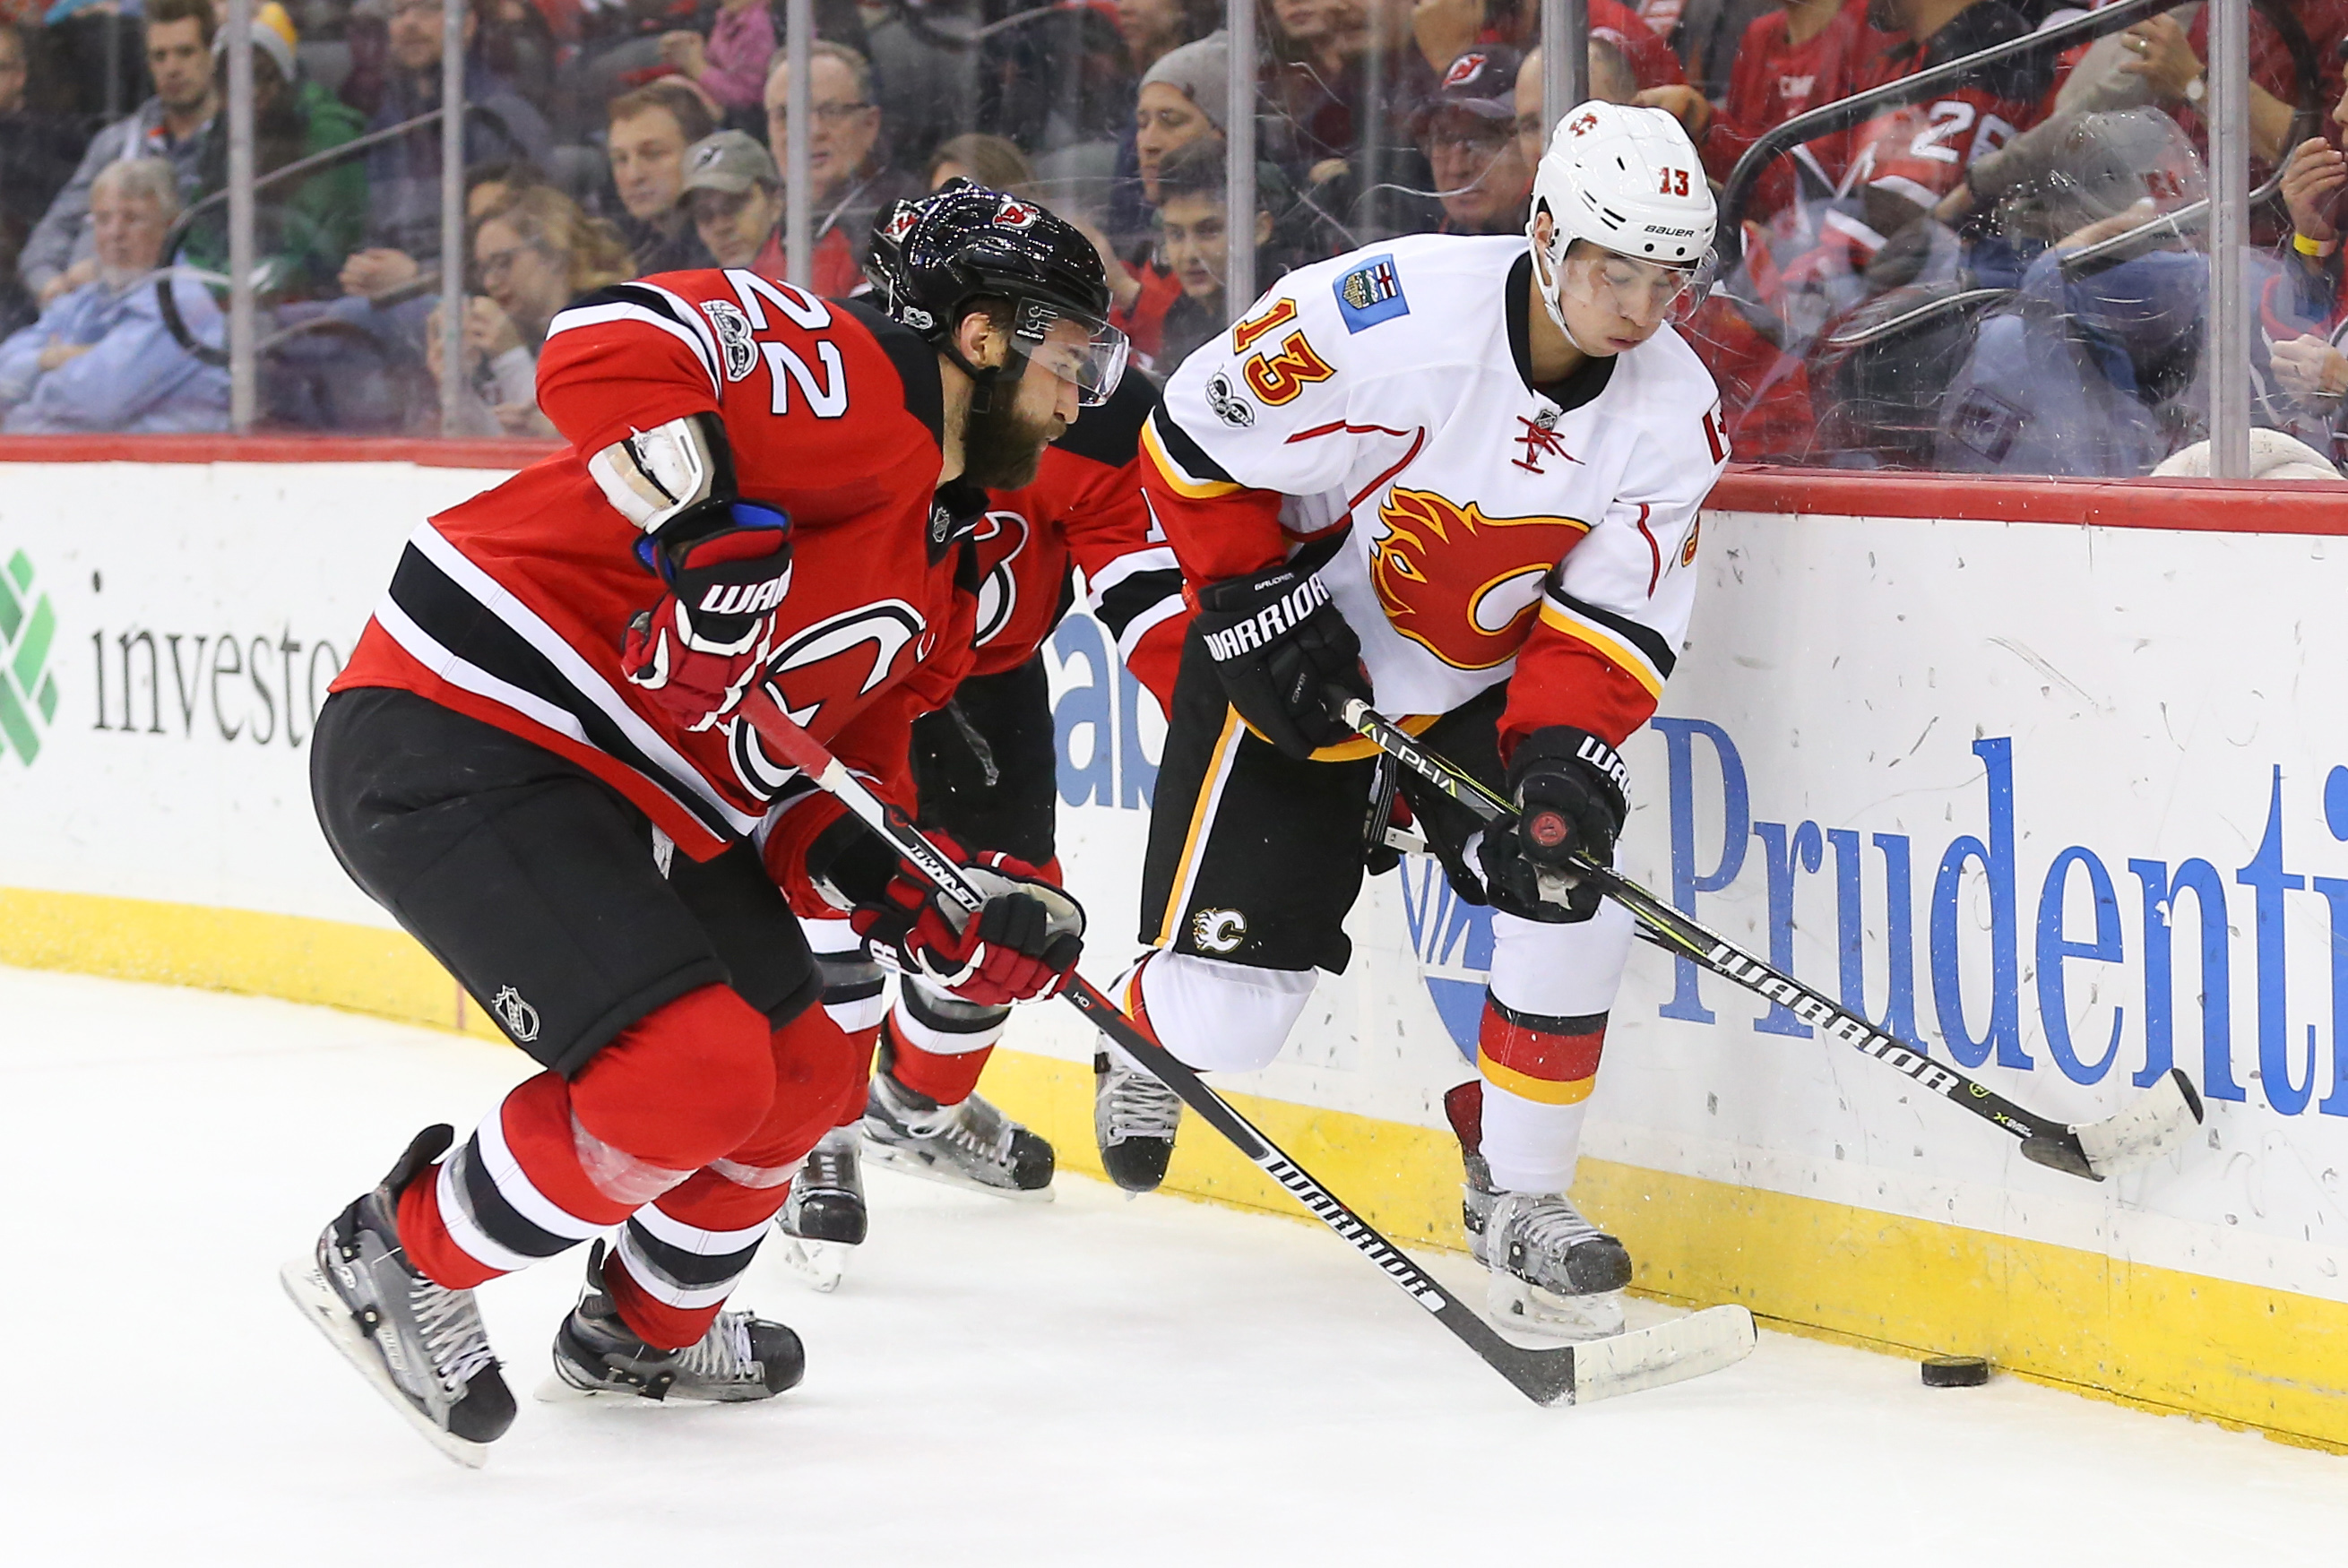 Calgary Flames Top New Jersey Devils With Help From TJ Brodie